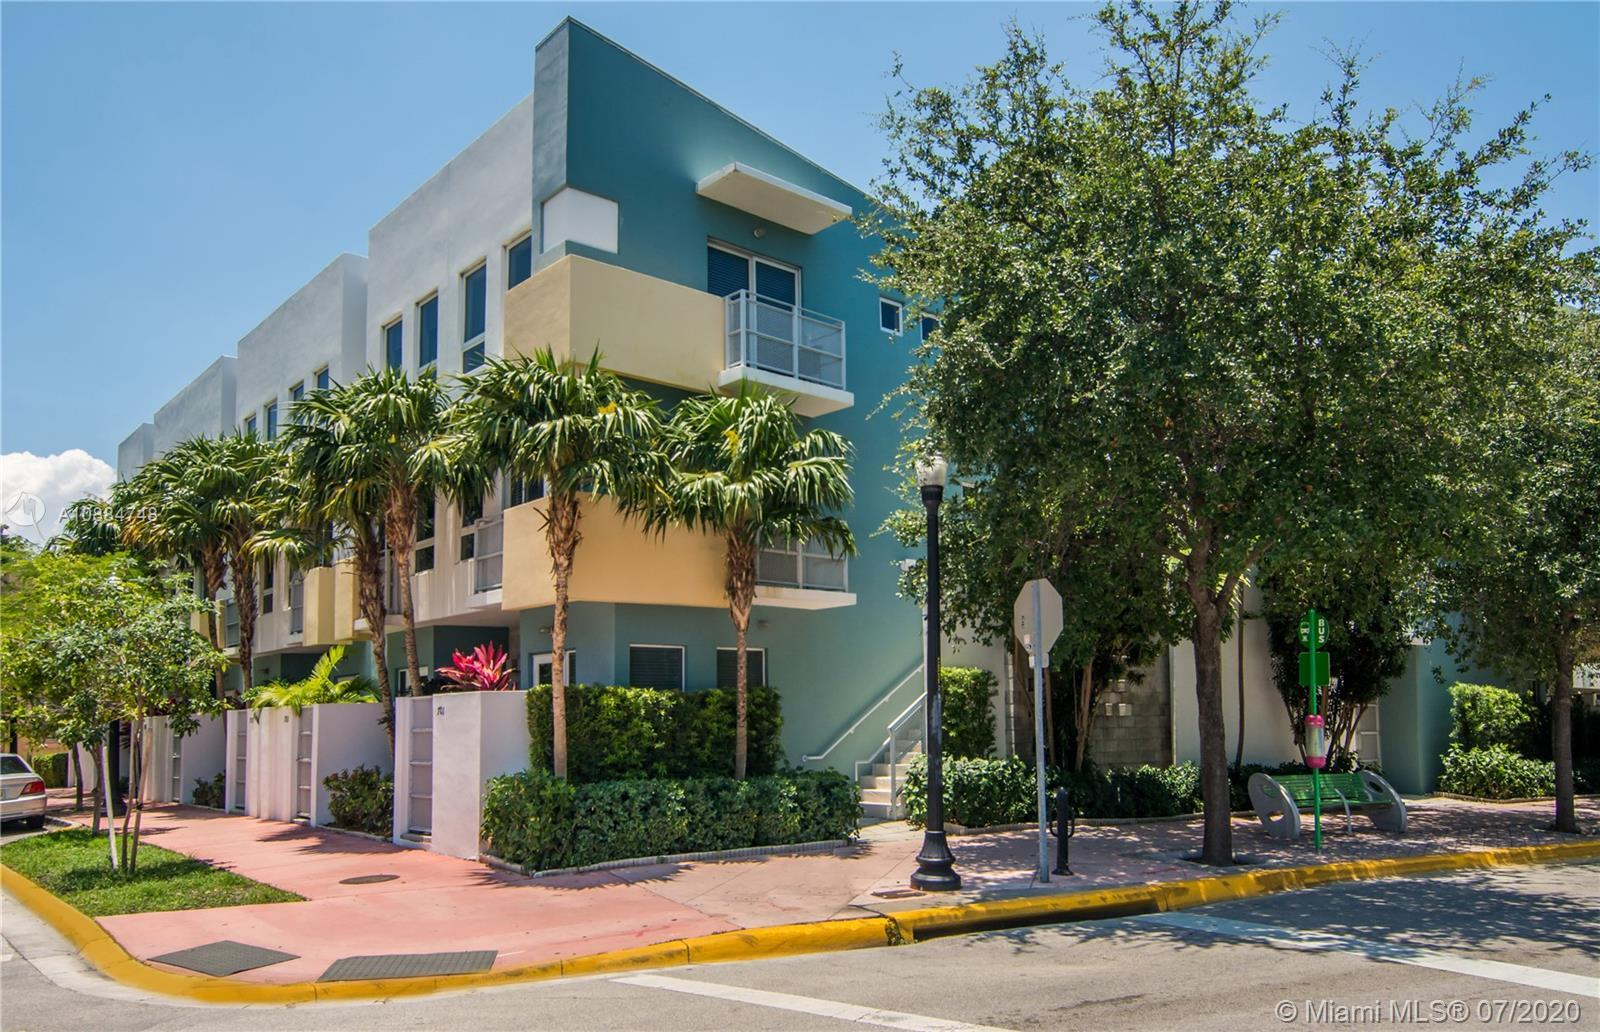 Contemporary 2 bedroom Townhouse South of Fifth. Two blocks from the ocean and all the fun SoBe has